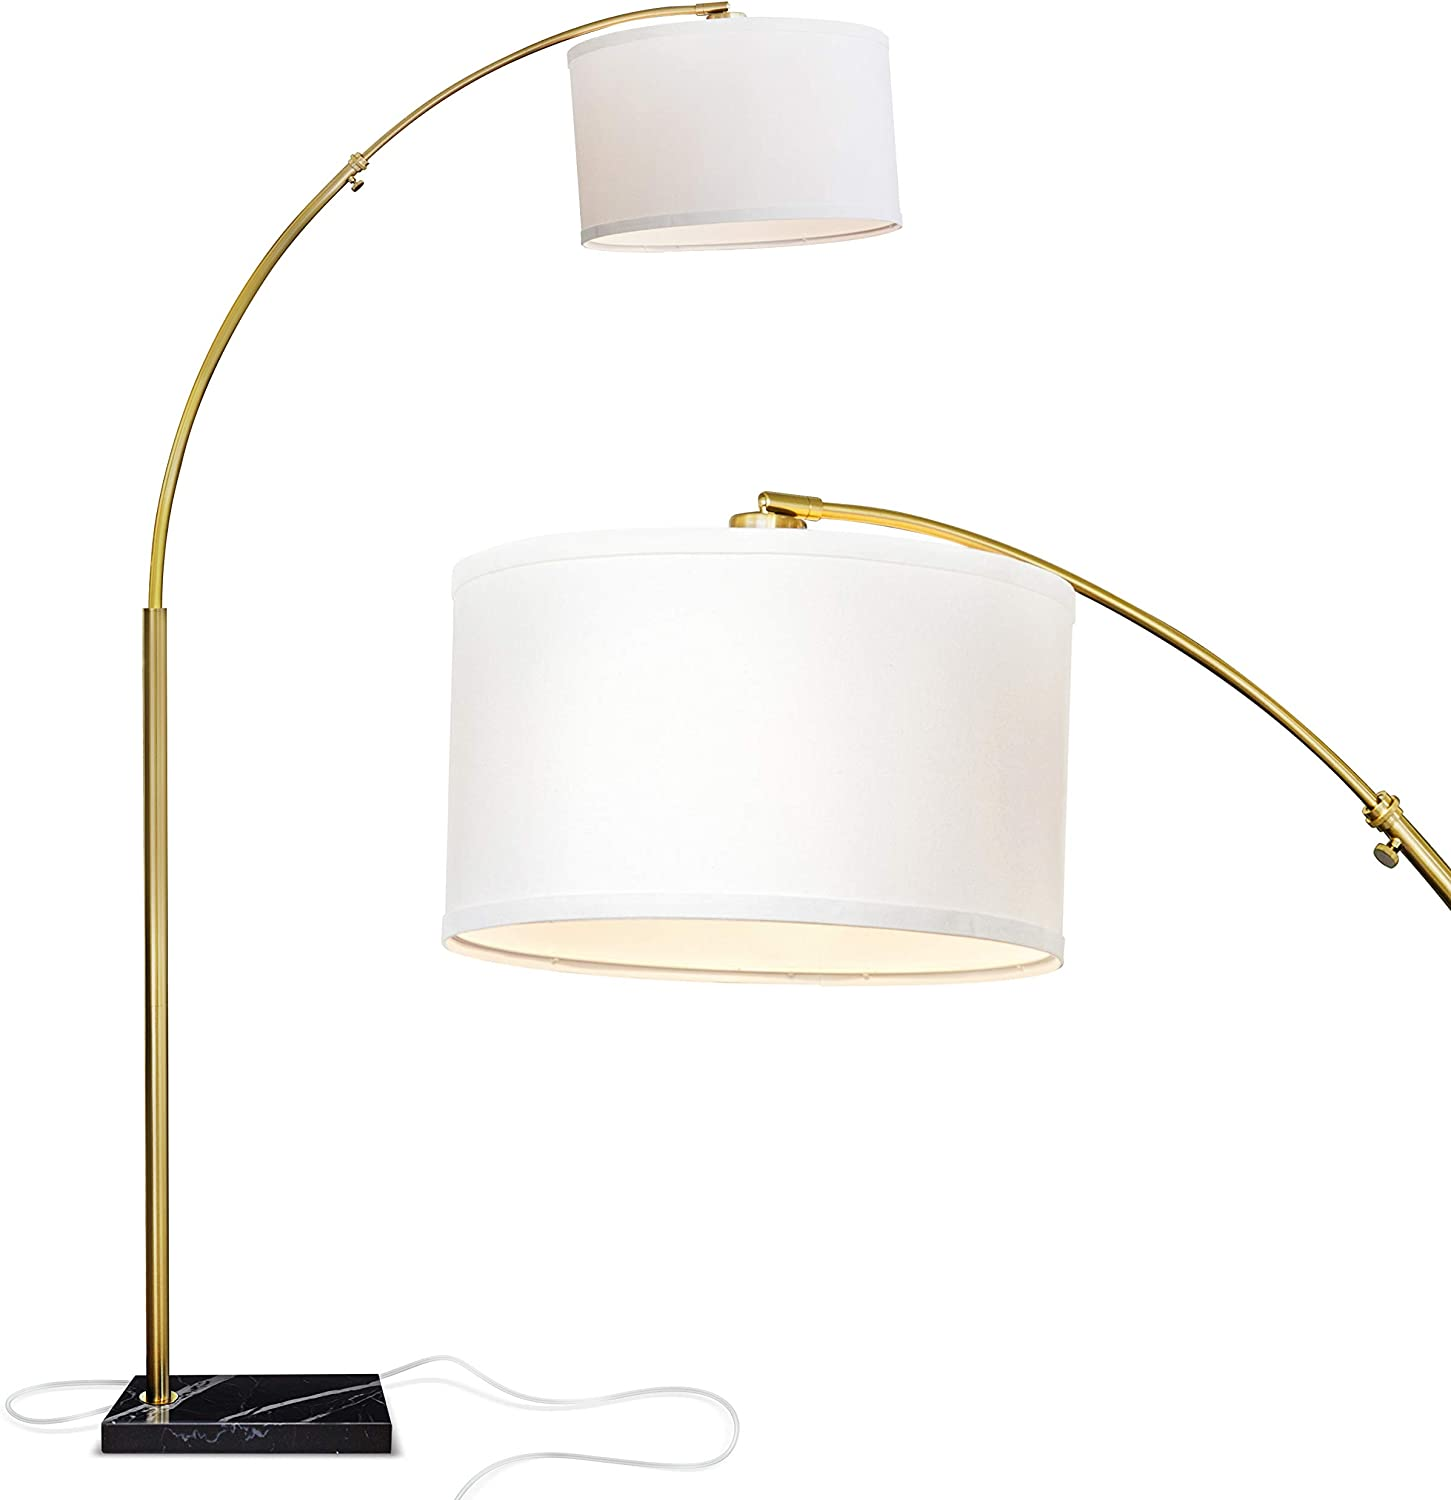 Brightech Max 84% OFF Logan - Contemporary Max 54% OFF Arc Floor w. Lamp Base O Marble